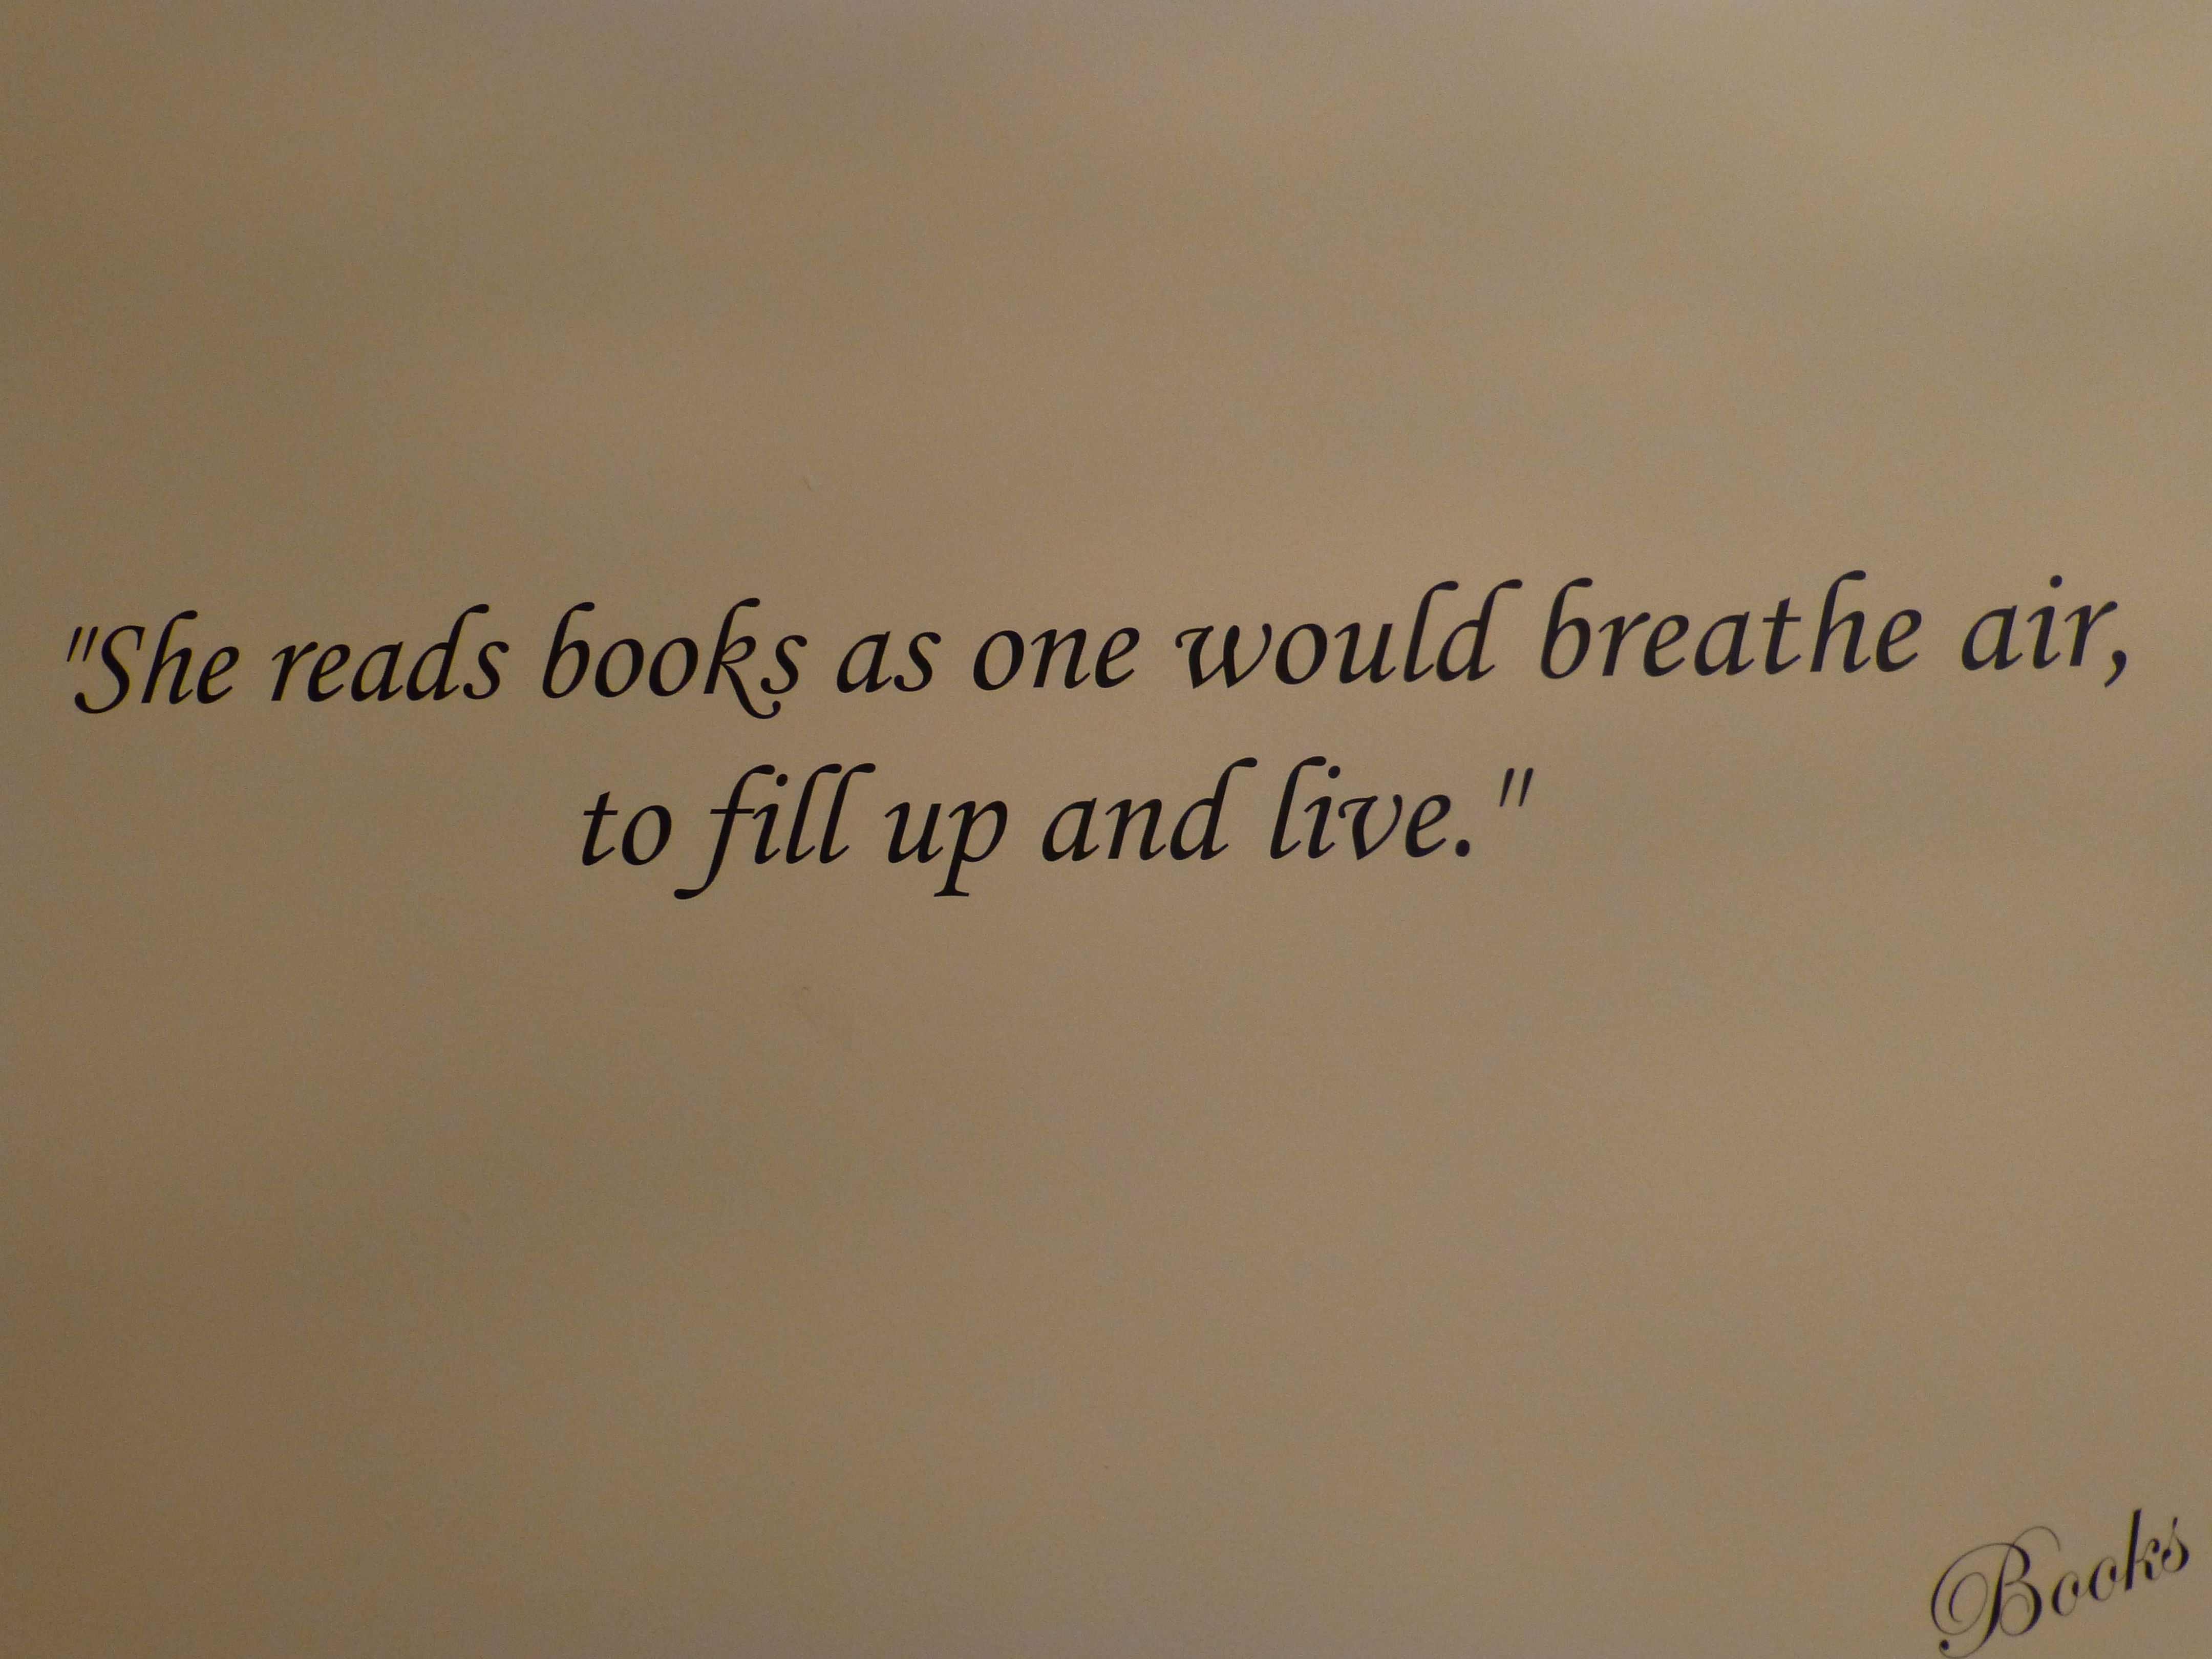 Famous Book Quotes: Books, Quotes And Chatter